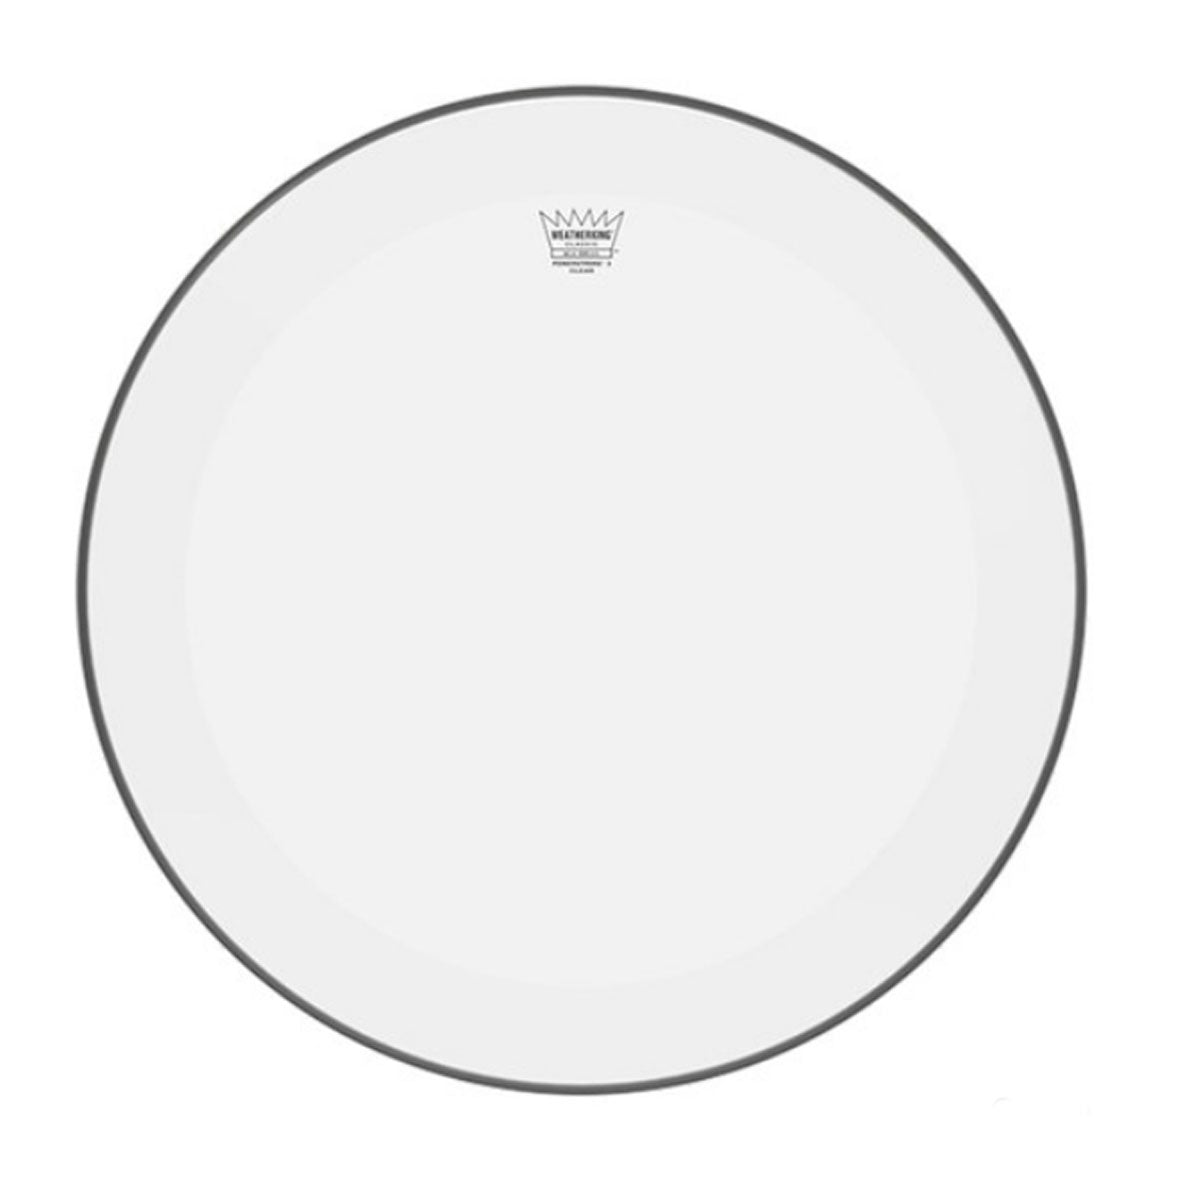 "Remo P3-1316-C2 Powerstroke P3 Clear Bass Drumhead, 16"" w/ Falam Patch"